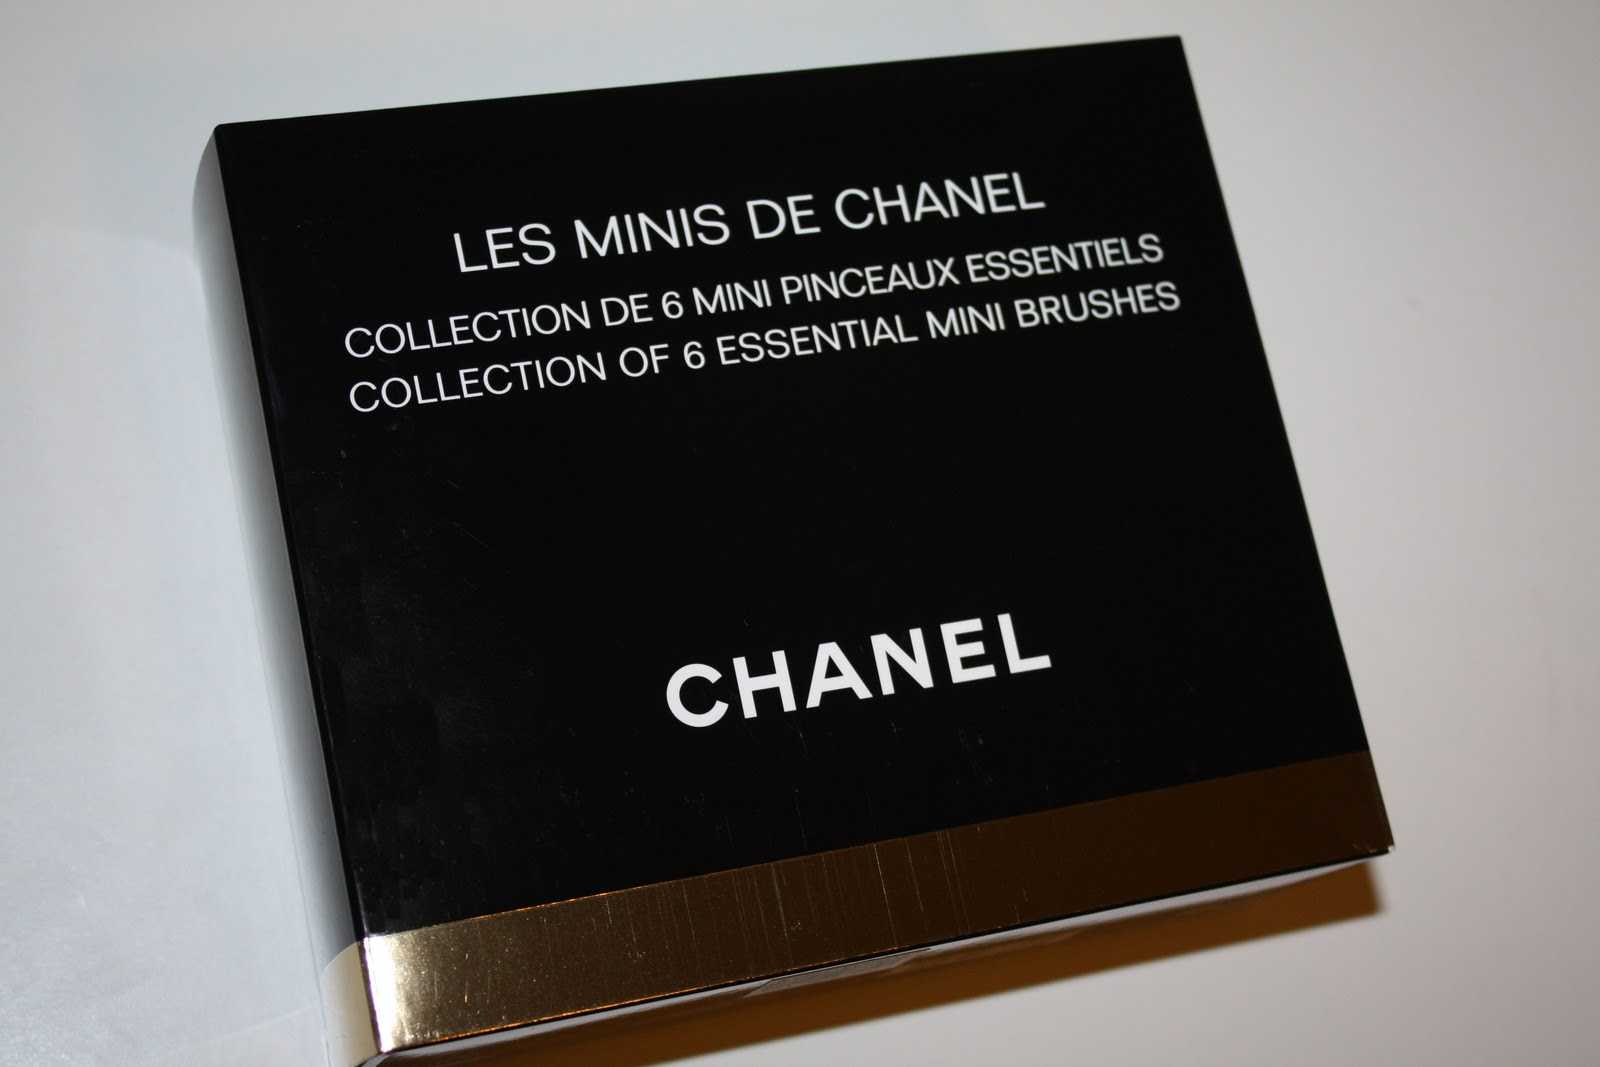 8223ca52a9c ... Chanel released another Les Minis de Chanel brush set. The brushes are  not the same as the brushes in the 2009 holiday set although it is packaged  ...